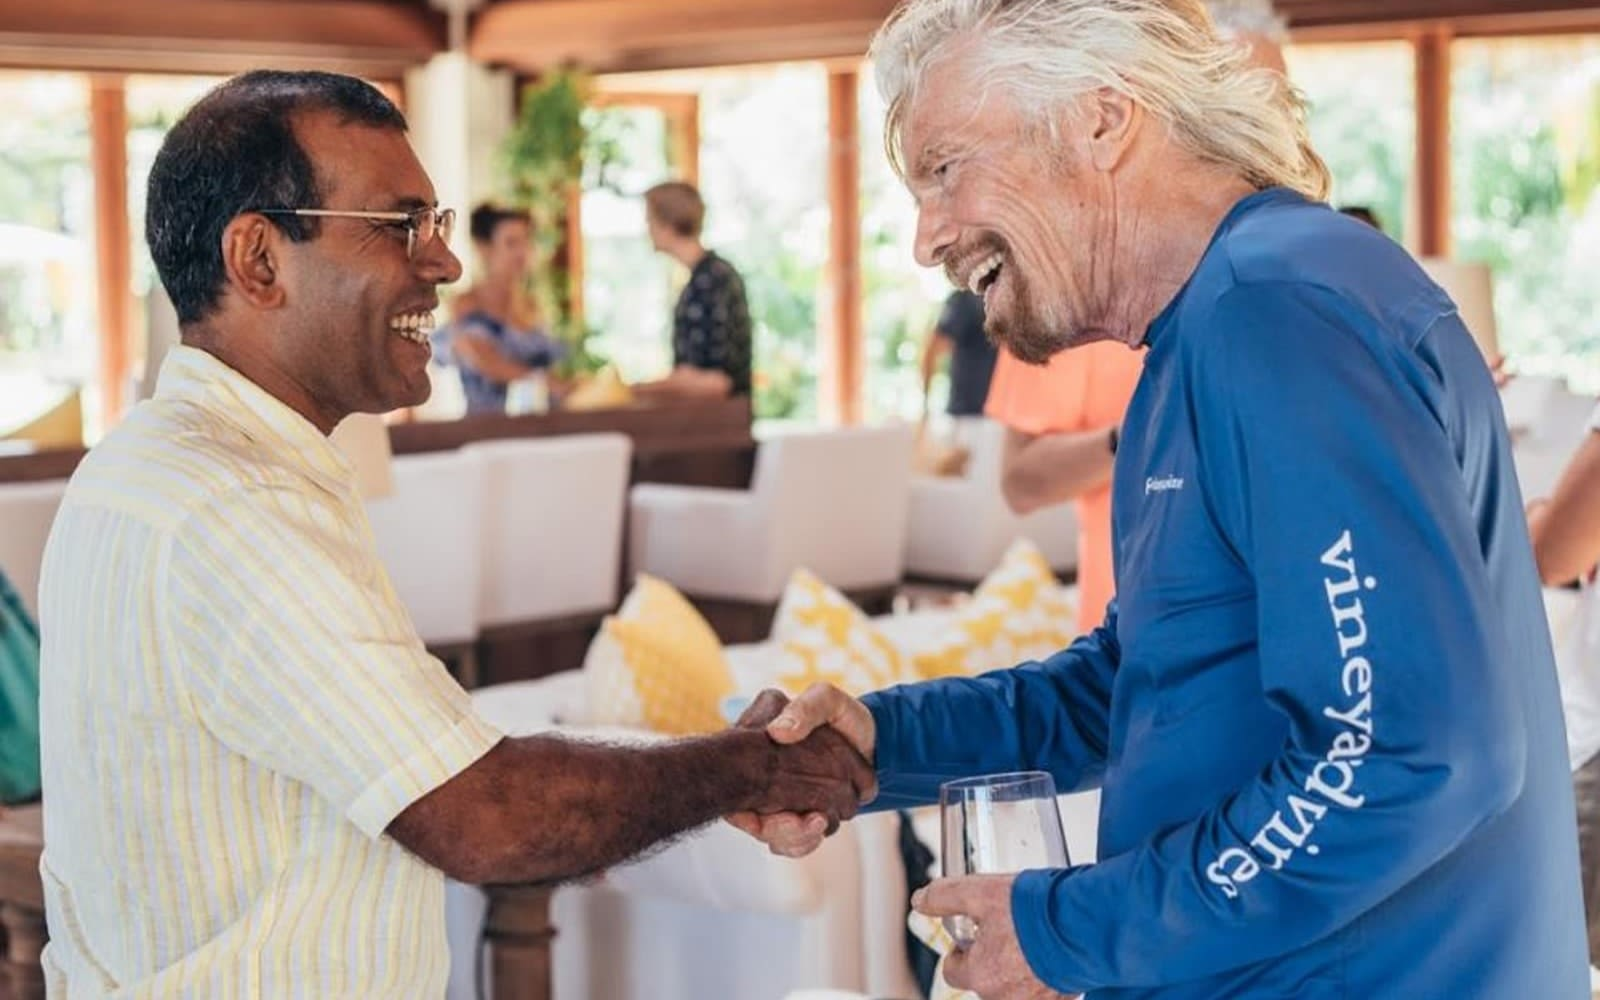 Richard Branson shaking hands with Mohamed Nasheed, smiling at each other